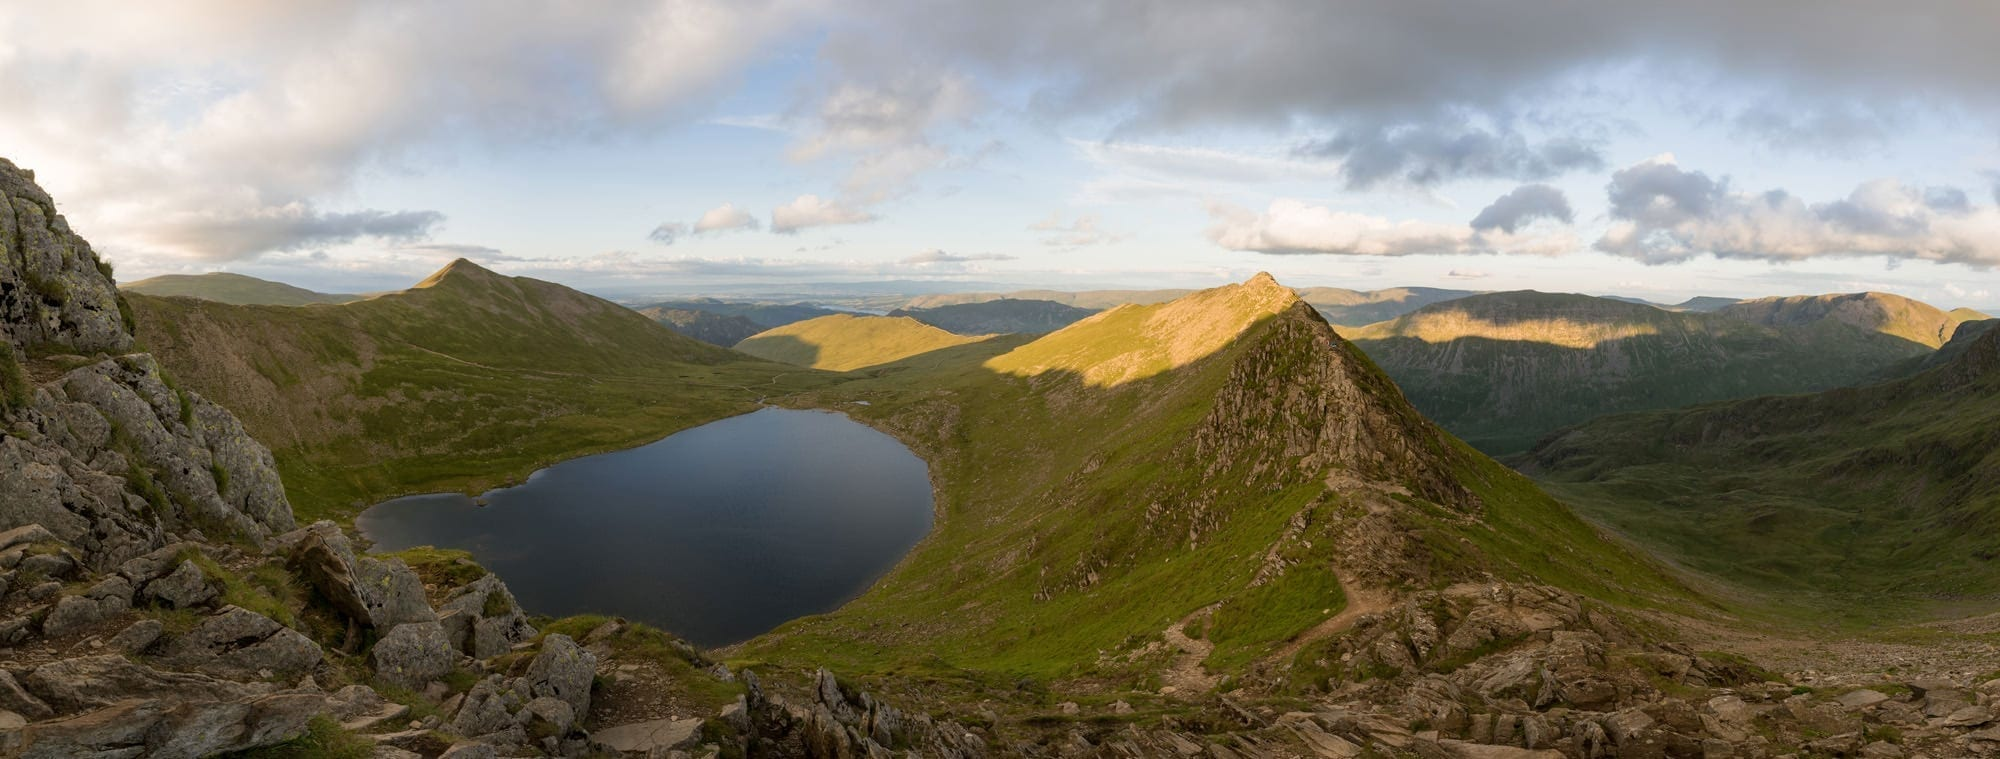 Striding Edge - Wild Camping Photography Workshop